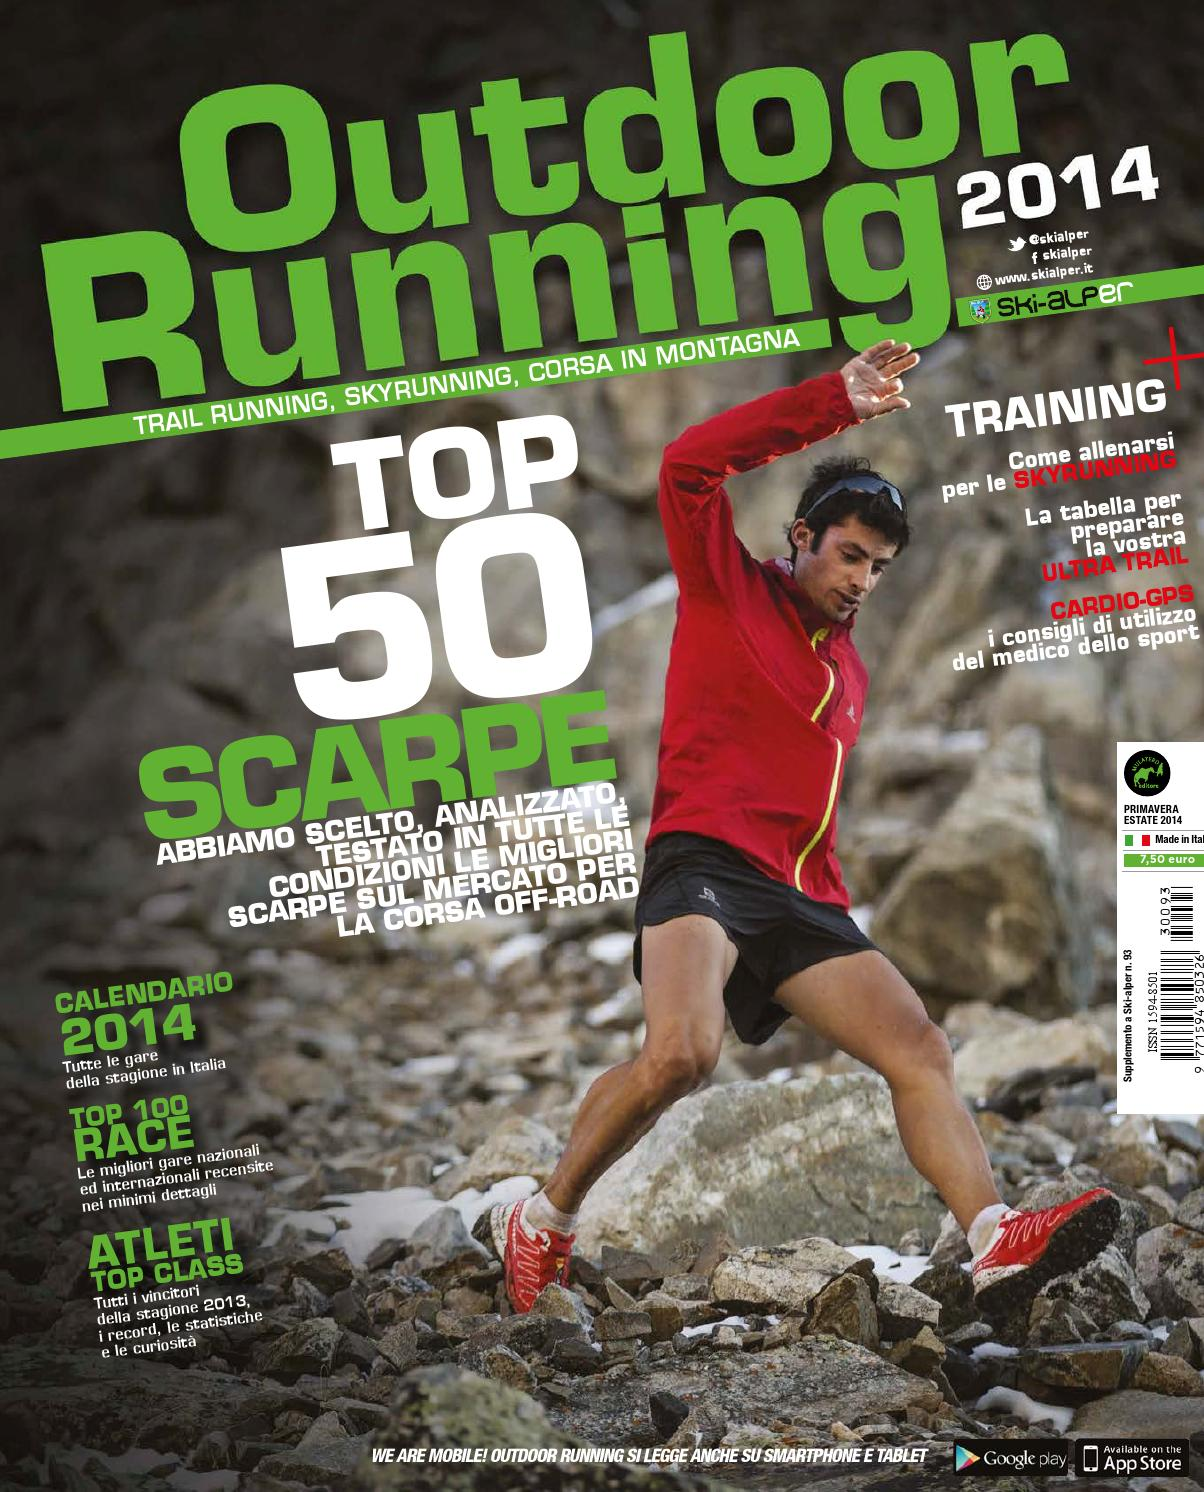 Outdoor Running 2014 by Mulatero Editore - issuu e512f915758e